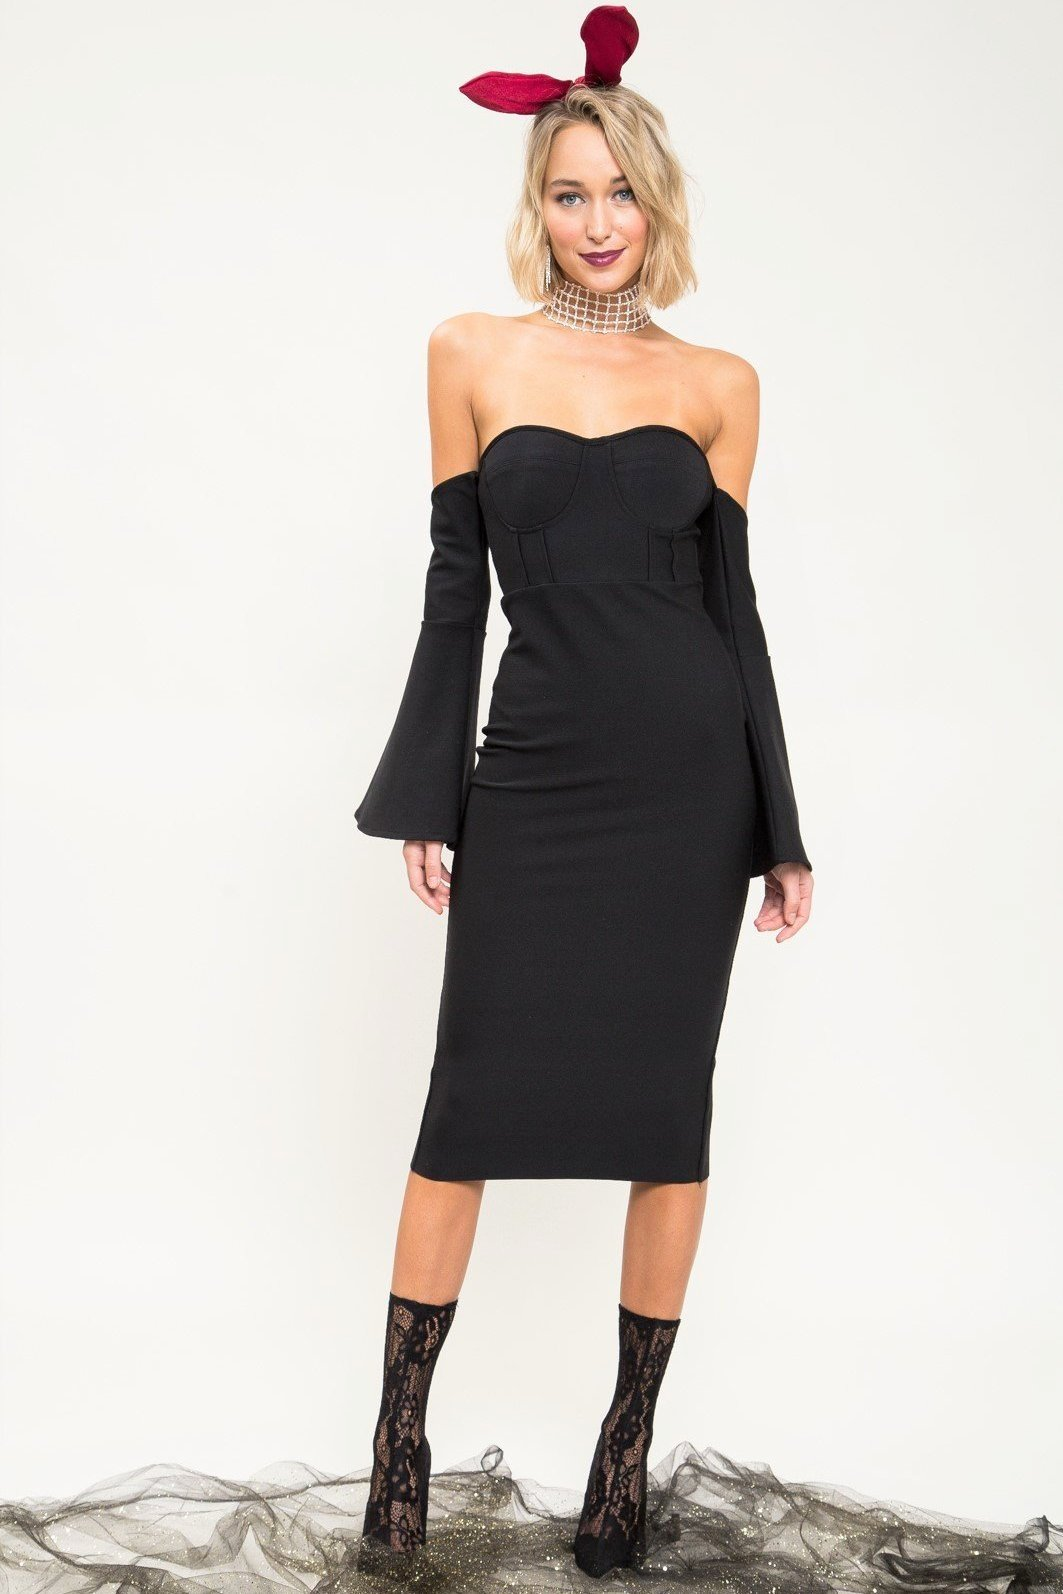 Stay Dangerous Bodycon Midi Dress - Geegeebae